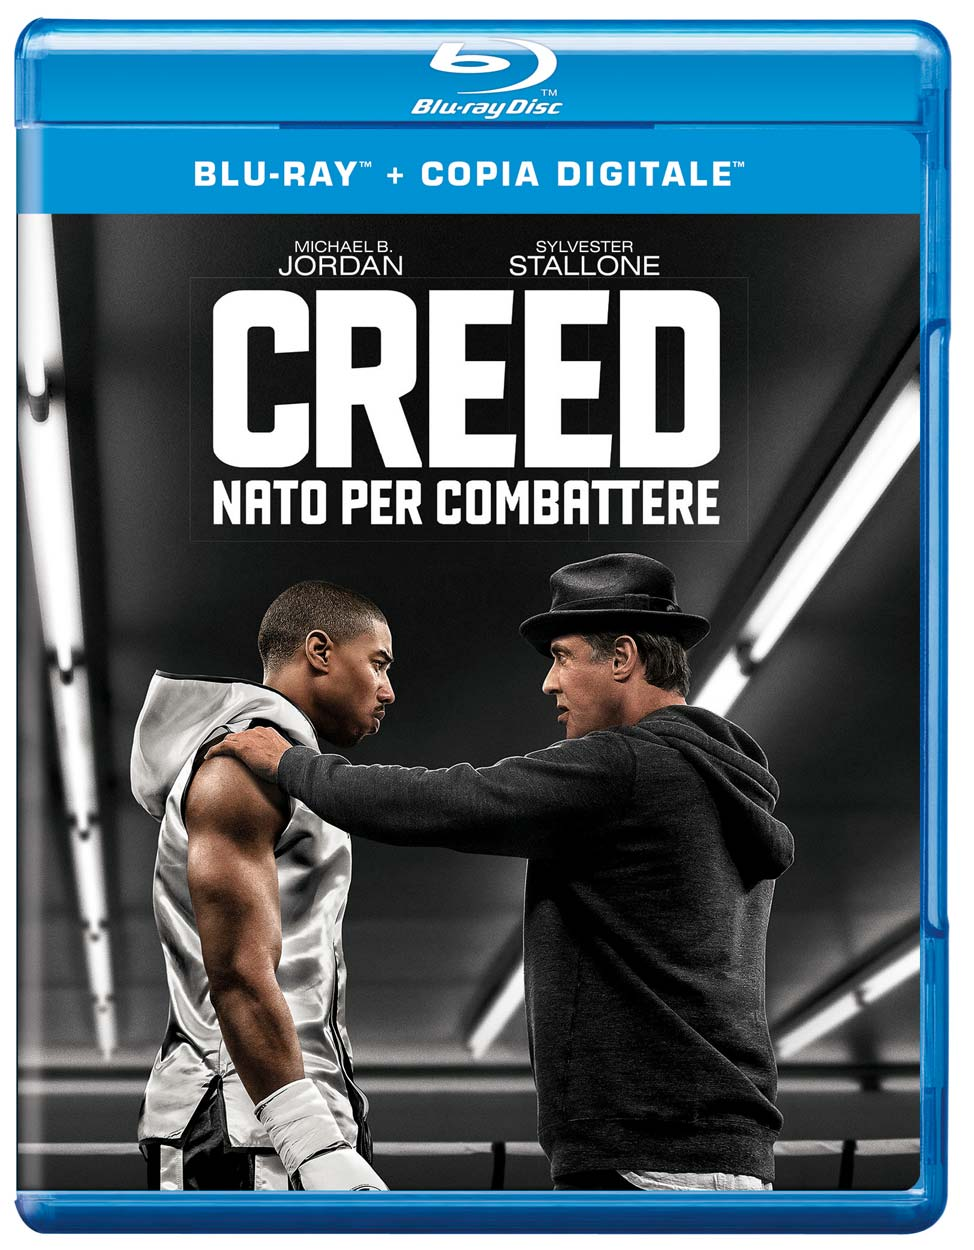 CREED - NATO PER COMBATTERE (BLU RAY)